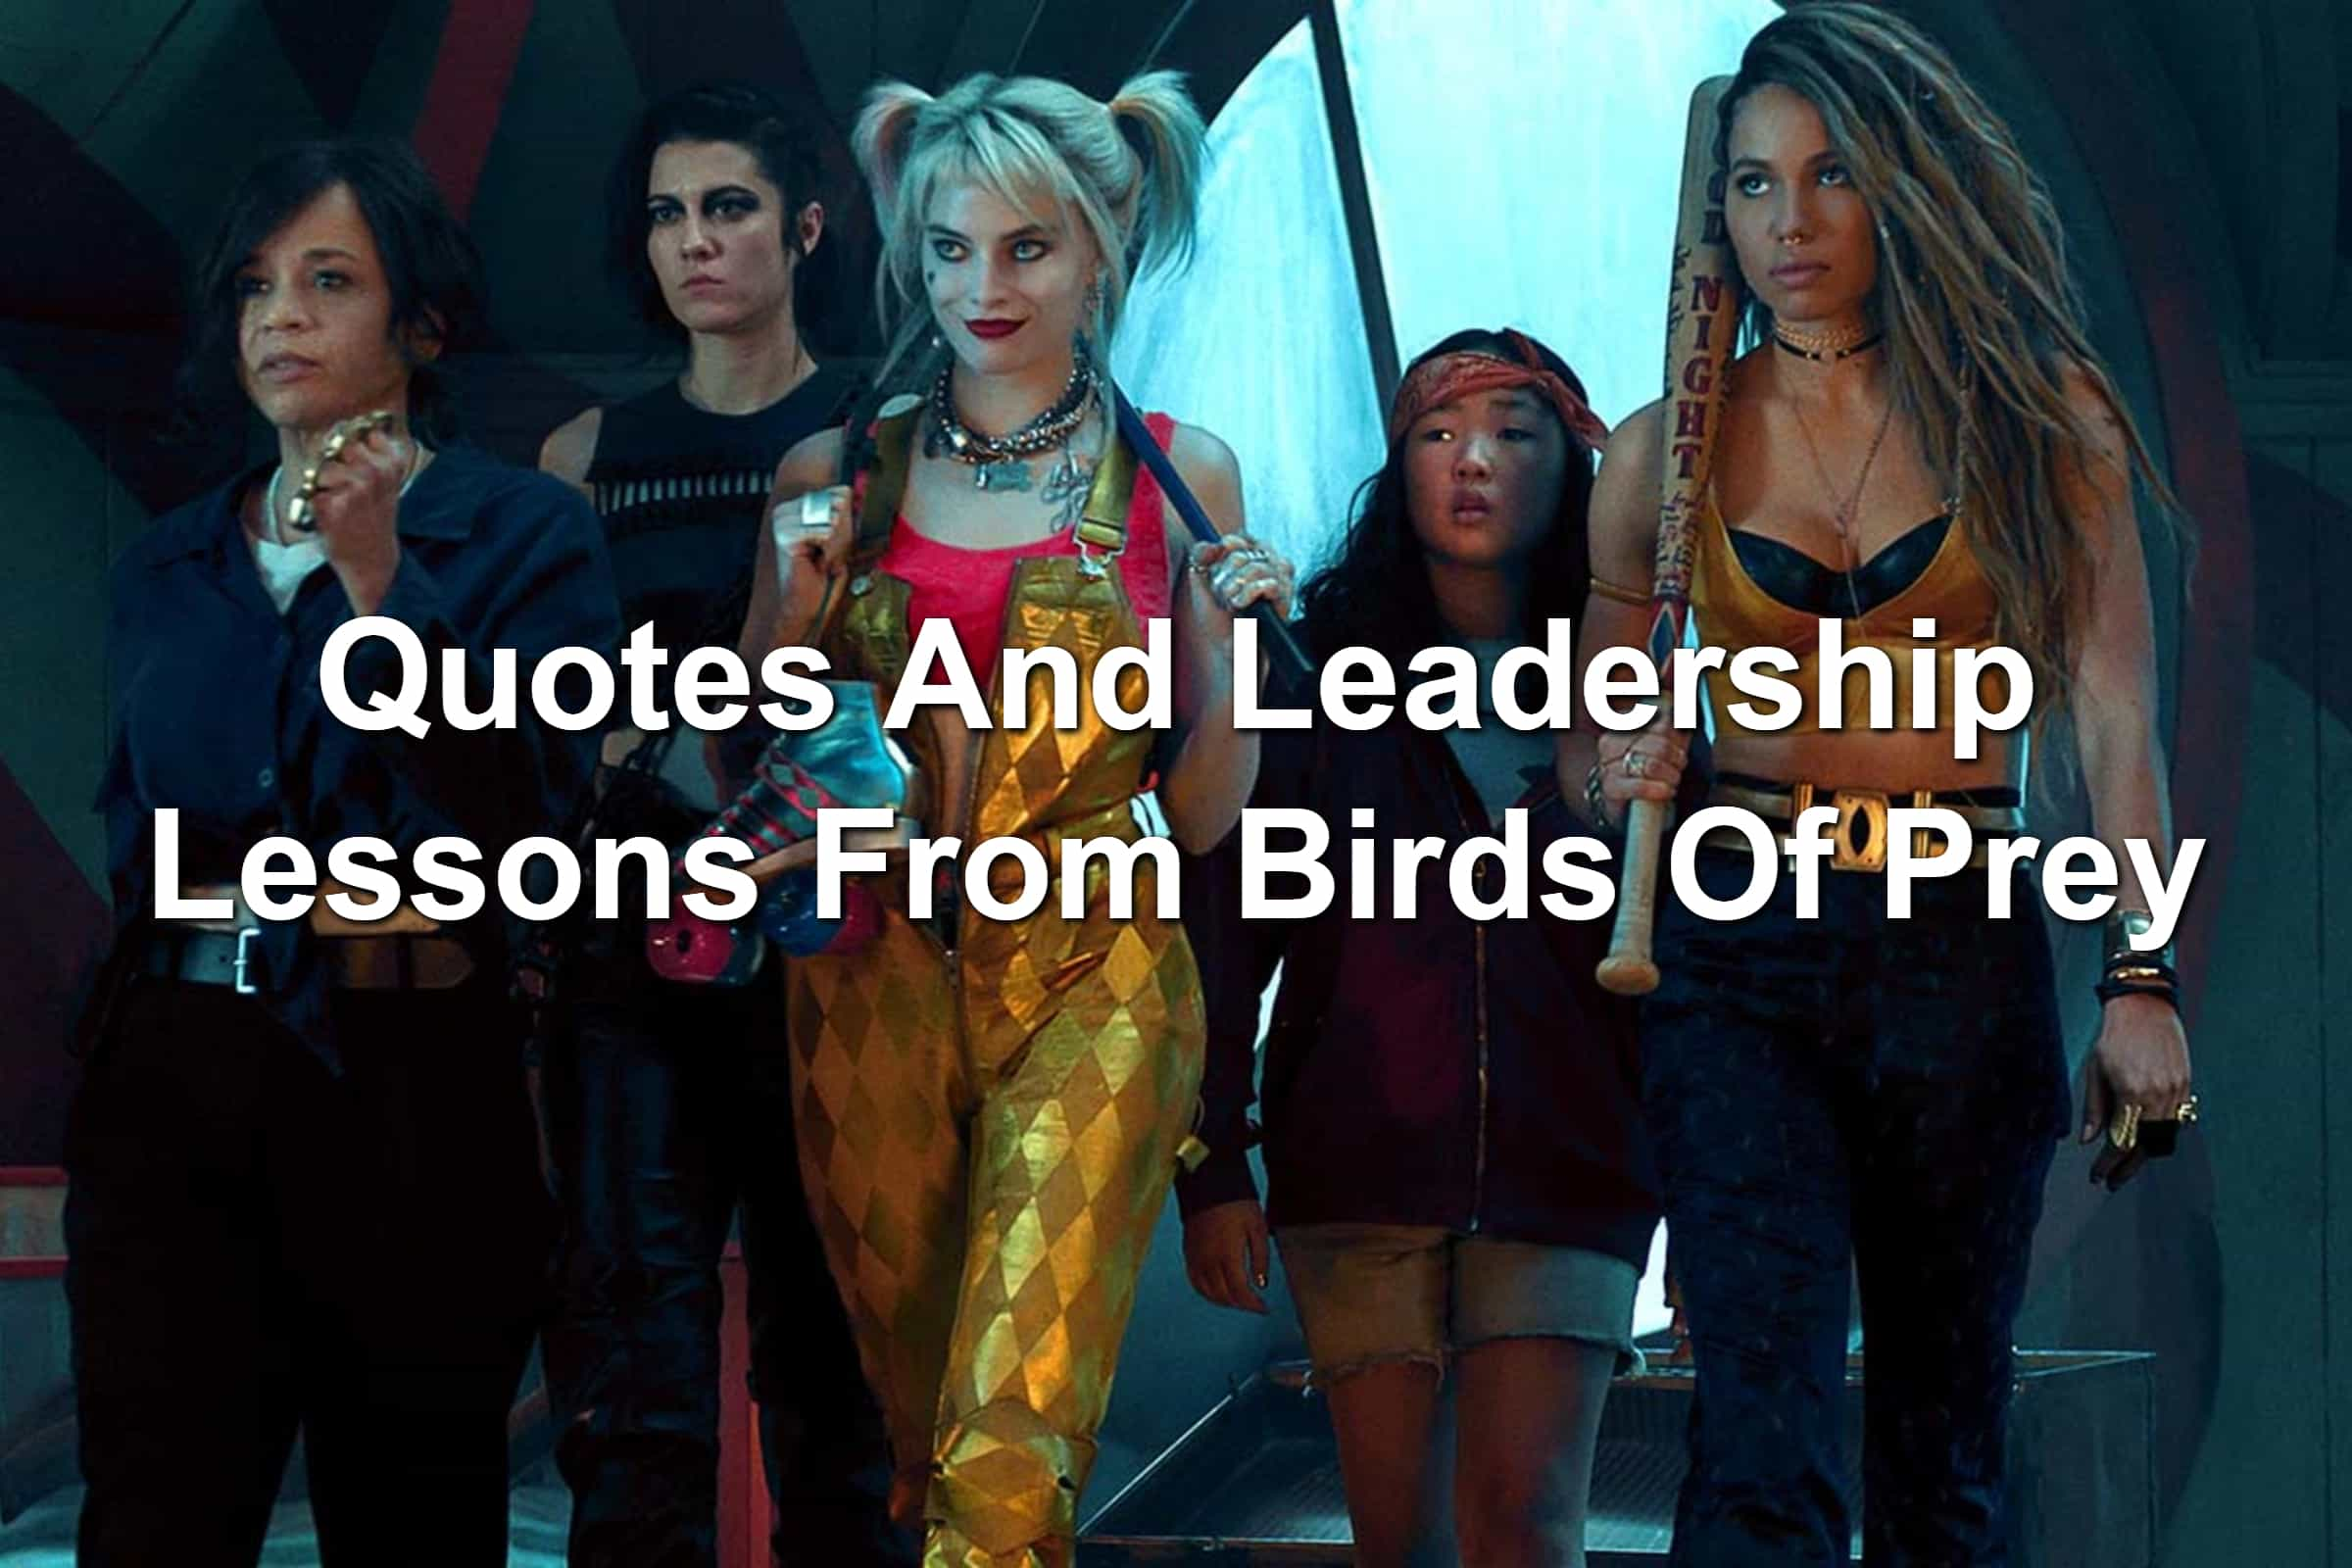 Margot Robbie, Rosie Perez, Mary Elizabeth Winstead, Jurnee Smollett-Bell, and Ella Jay Basco in Birds Of Prey